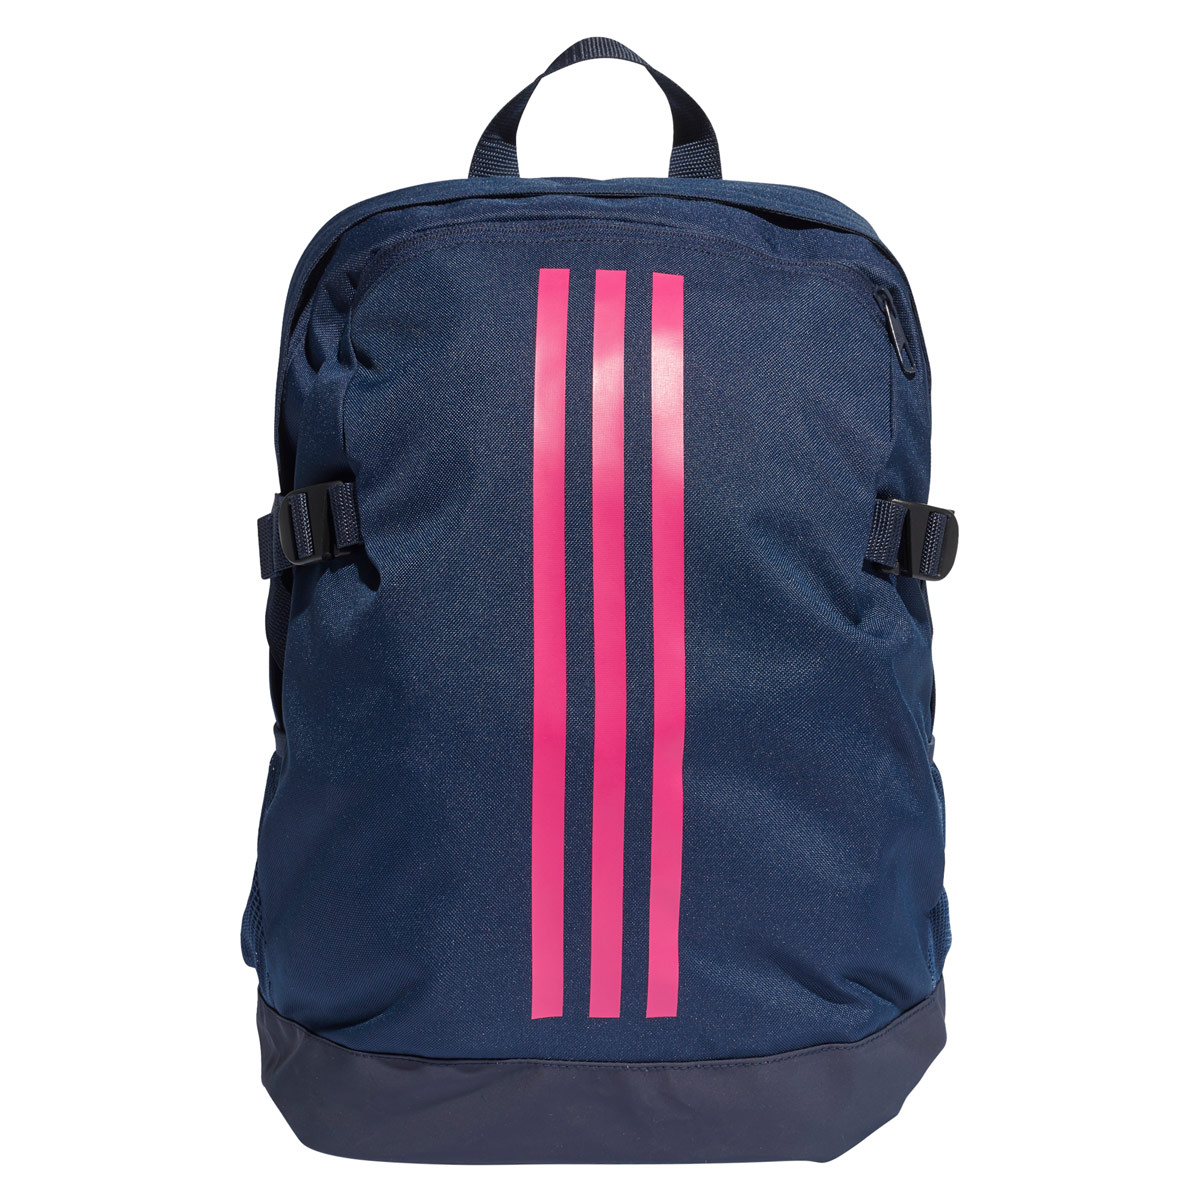 adidas 3-Stripes Power Backpack Medium - Backpacks for Men - Blue ... 55b382149d9f1